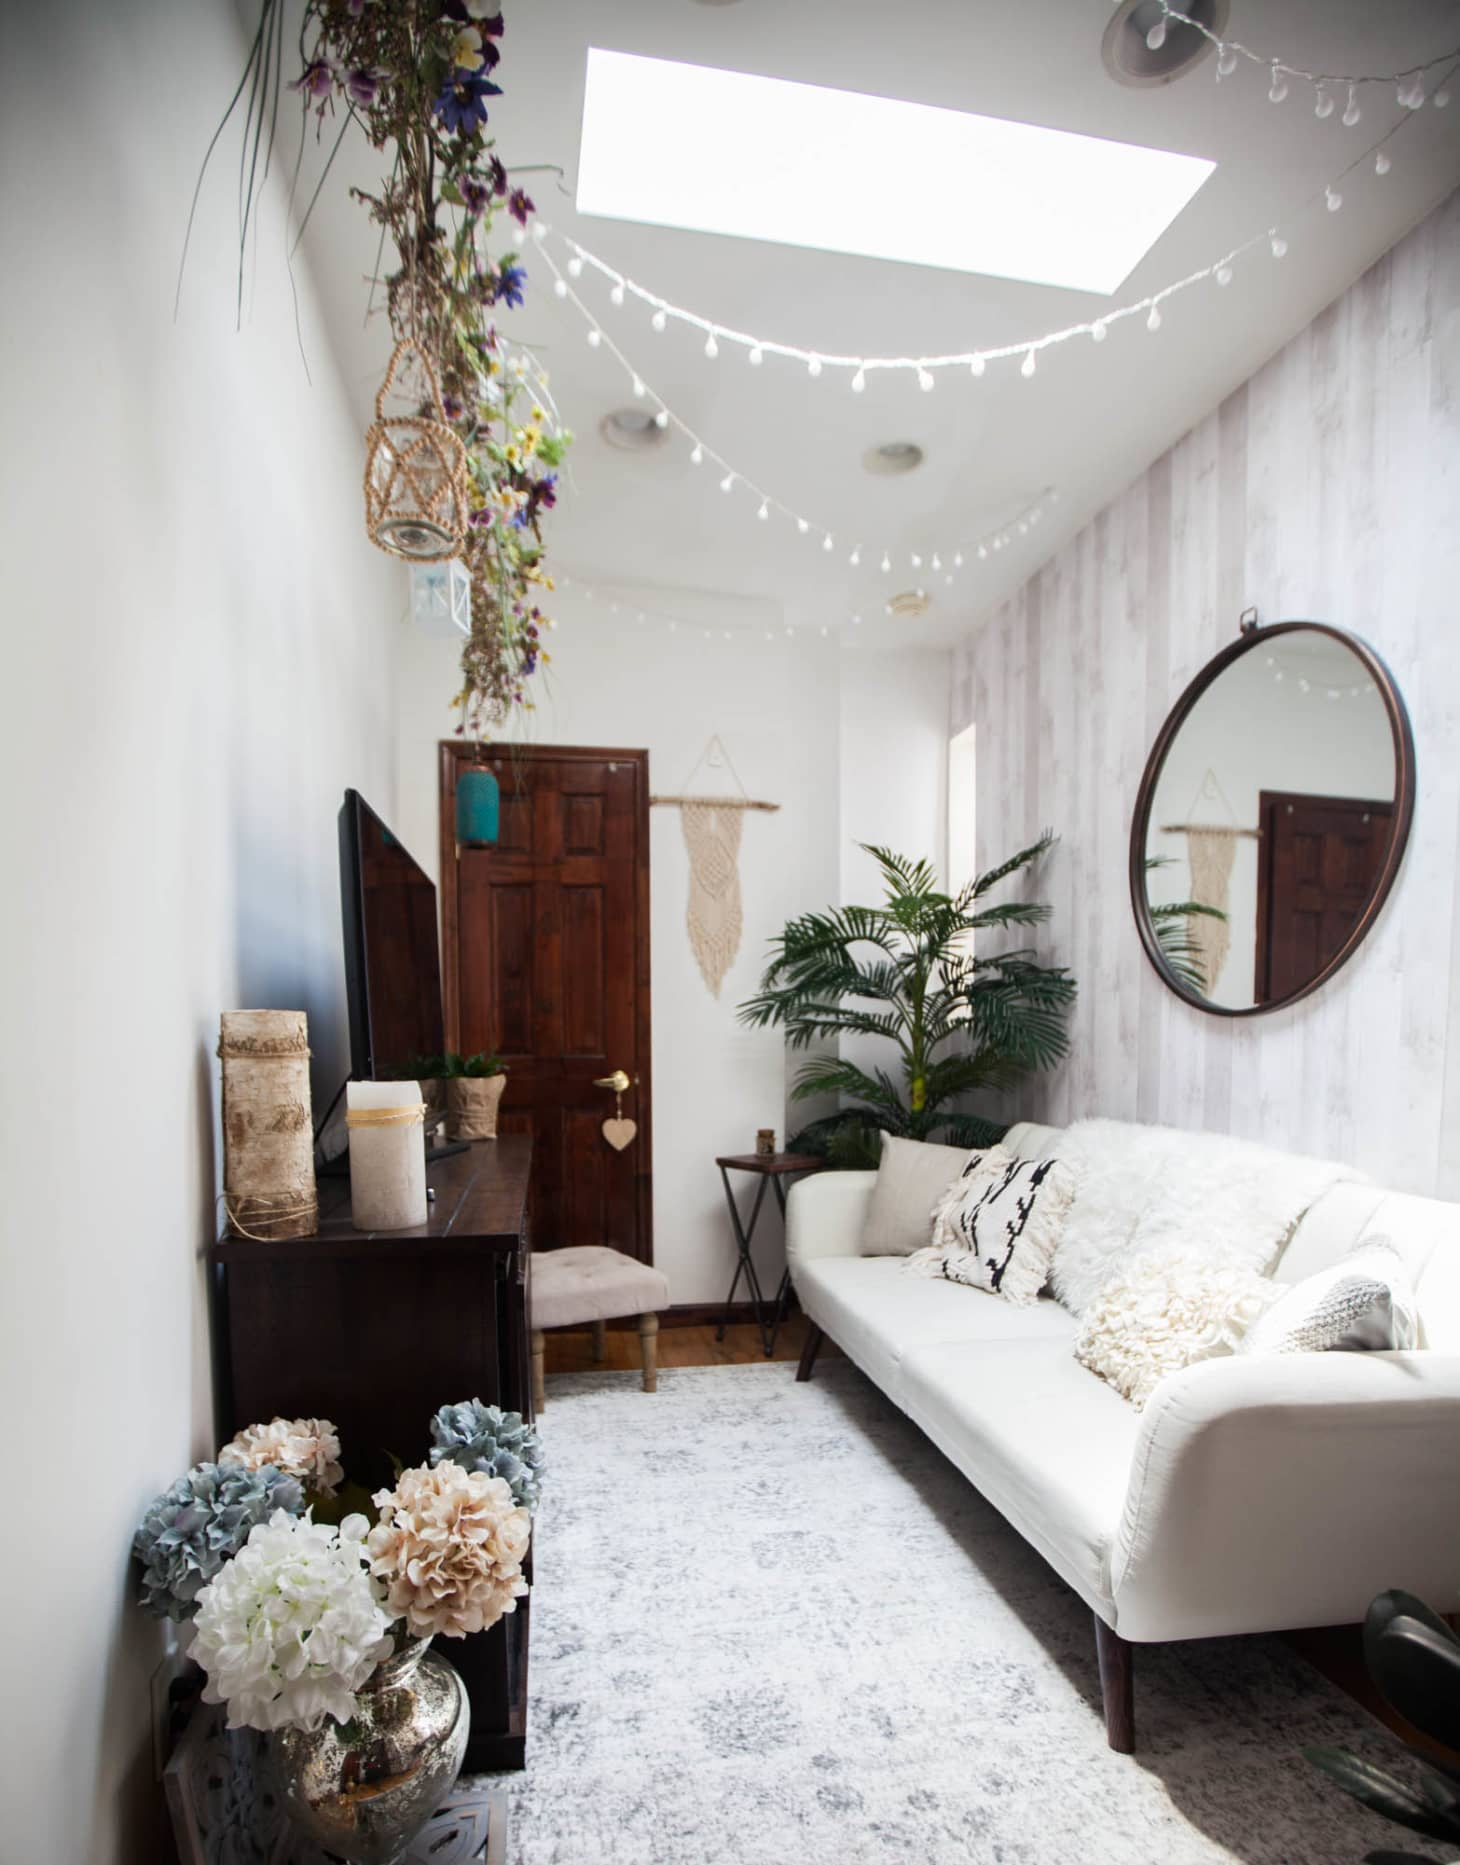 Small Space Living Room: 30 Small Living Room Decorating & Design Ideas